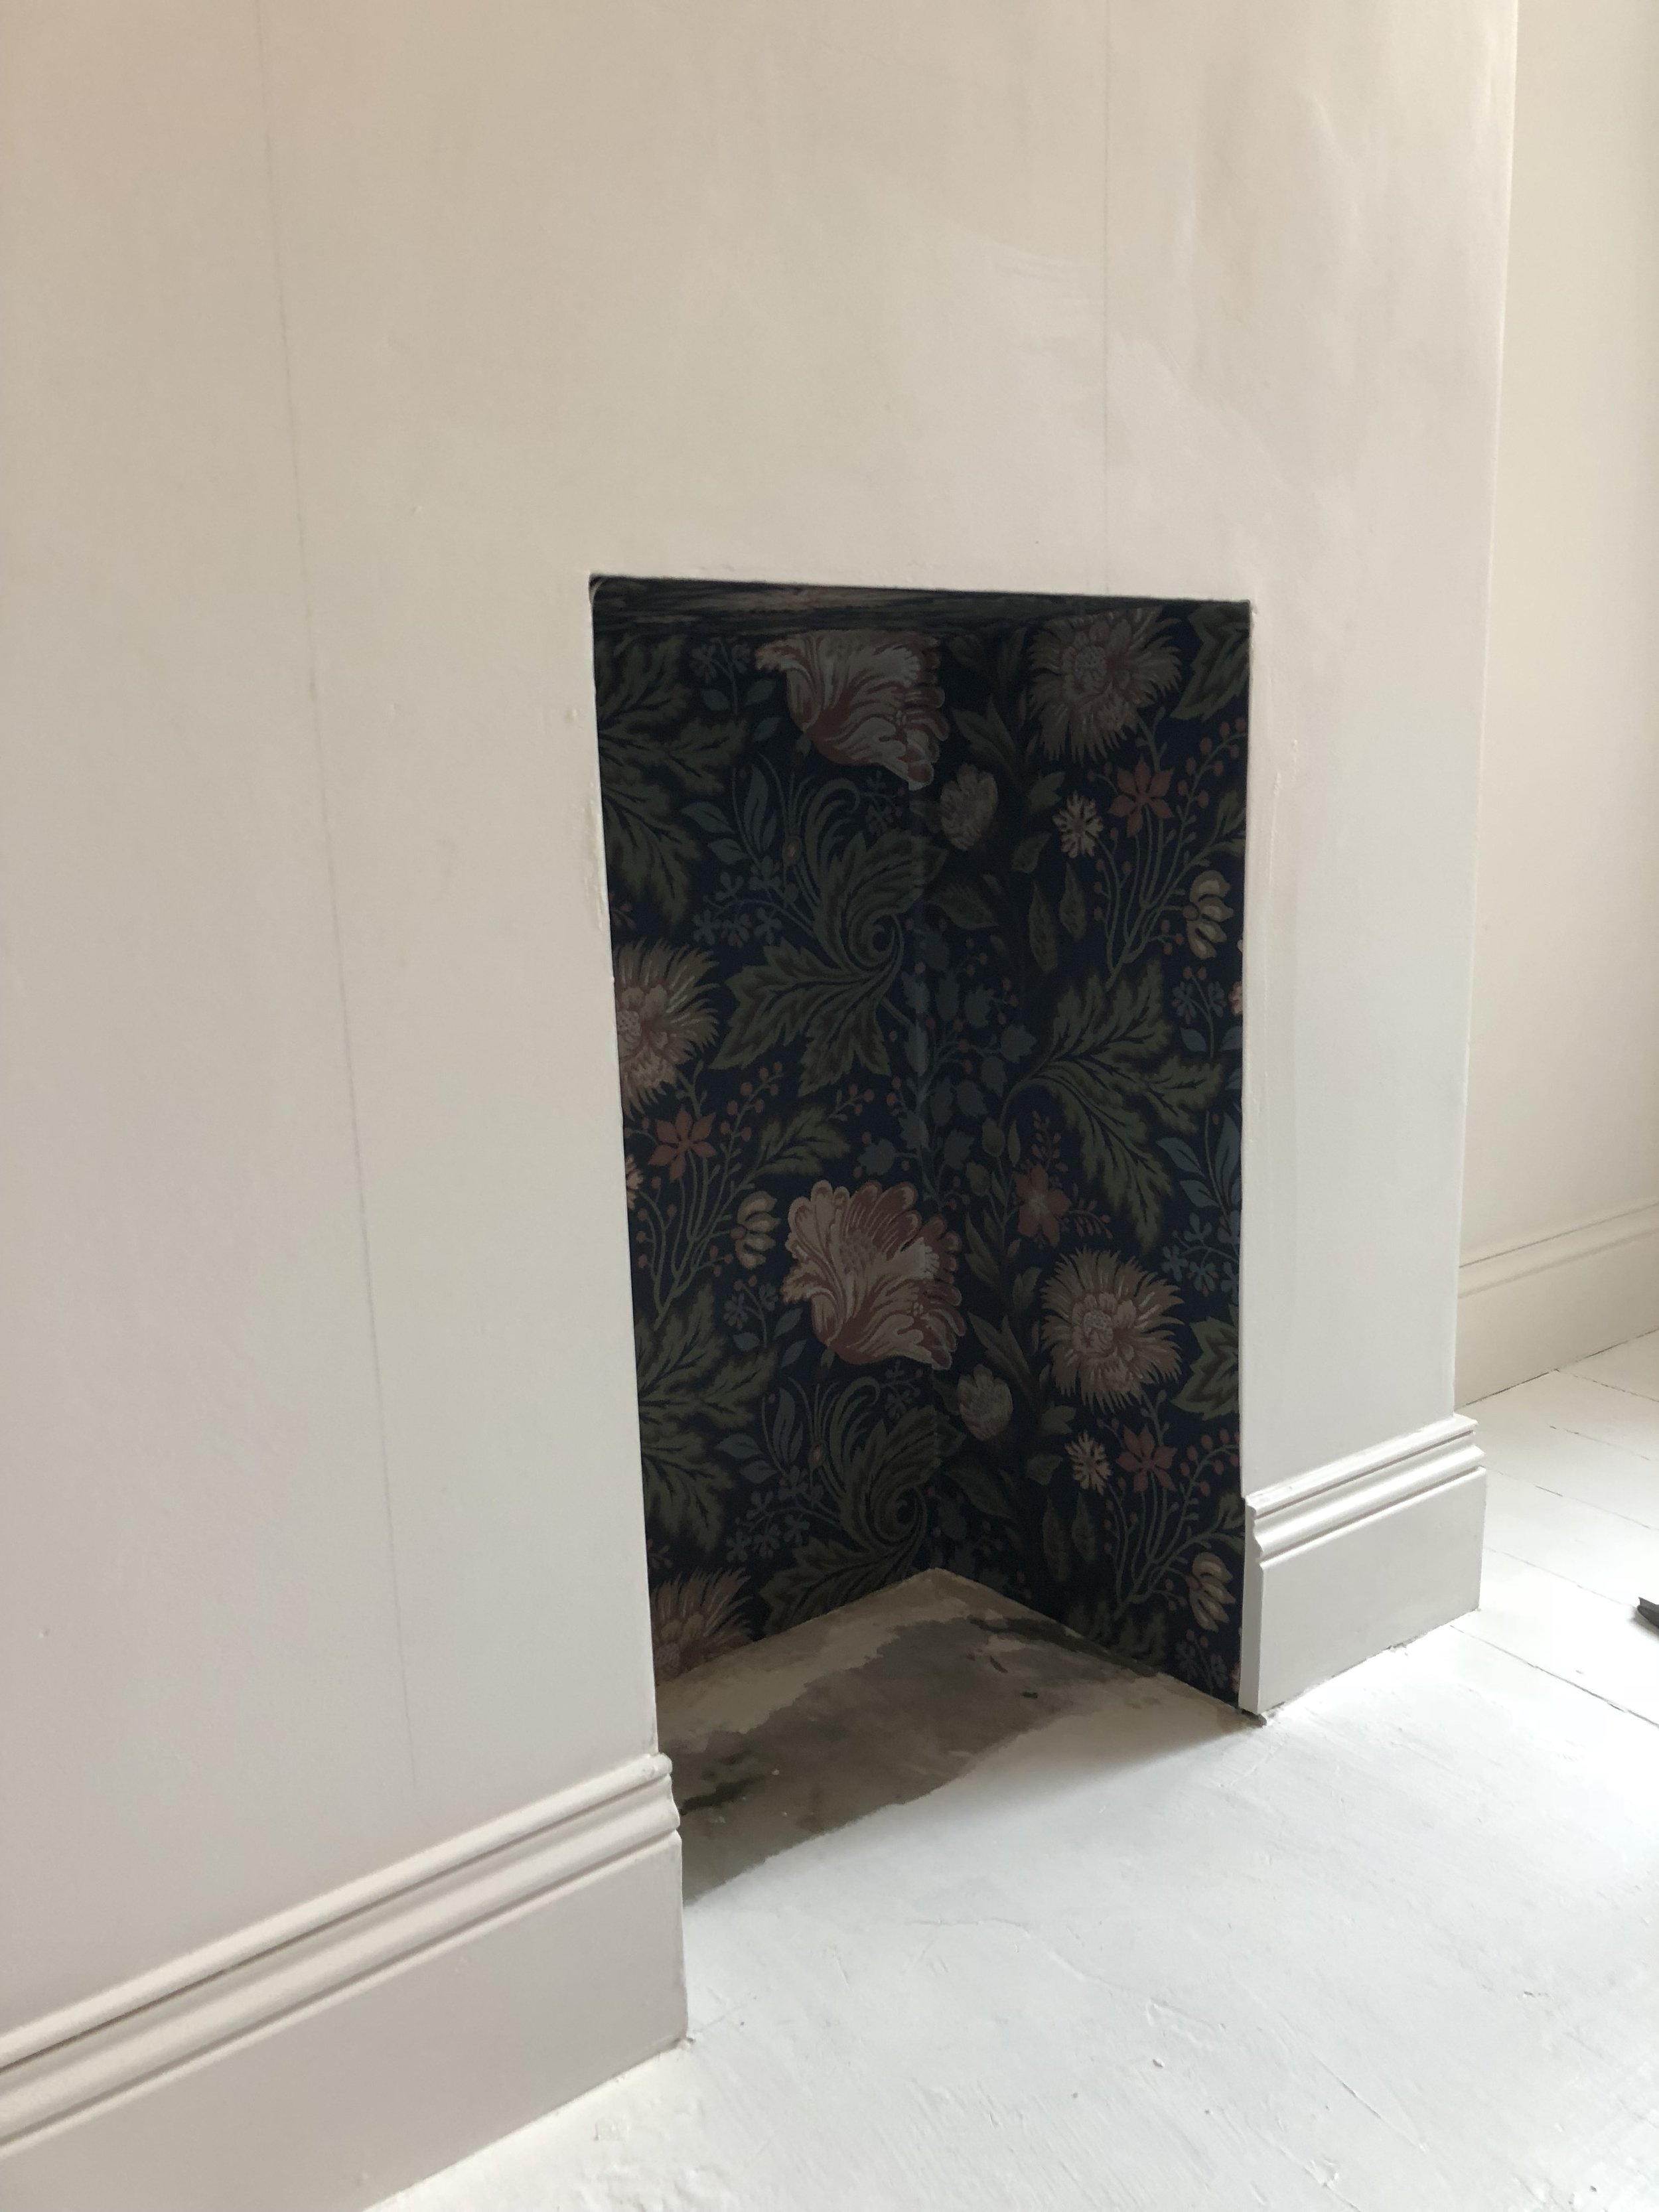 We started by wallpapering the inside of the fireplace to ensure we could match up the patterns and work around the corners